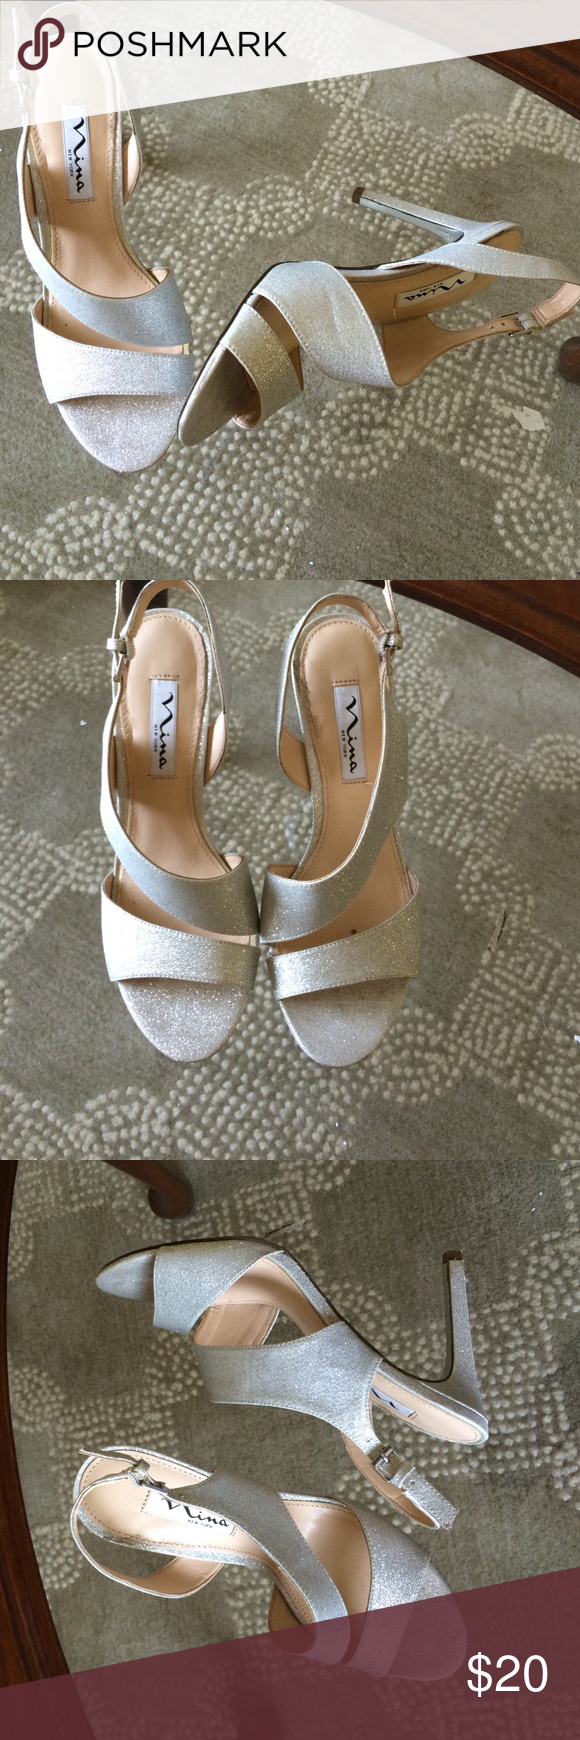 Silver Pumps Nina silver sparkle pumps with 4 inch heel. Worn just once for a wedding and are ready and waiting for the next special occasion. Nina Shoes Heels